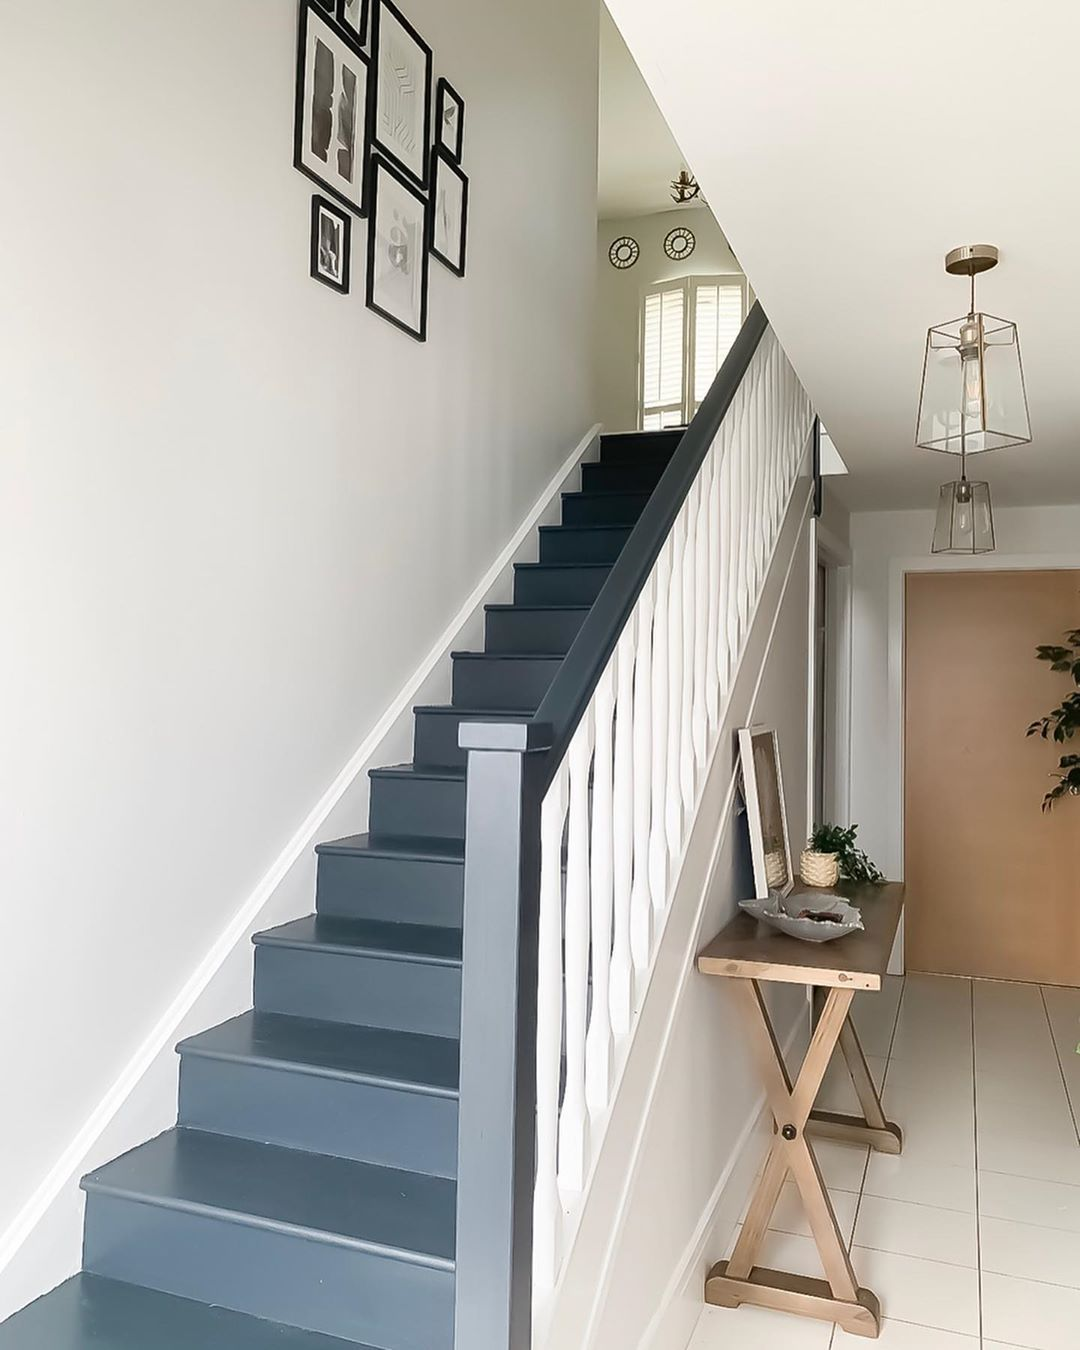 Farrow And Ball Railings Paint stairs painted in farrow & ball railings | stairs, house